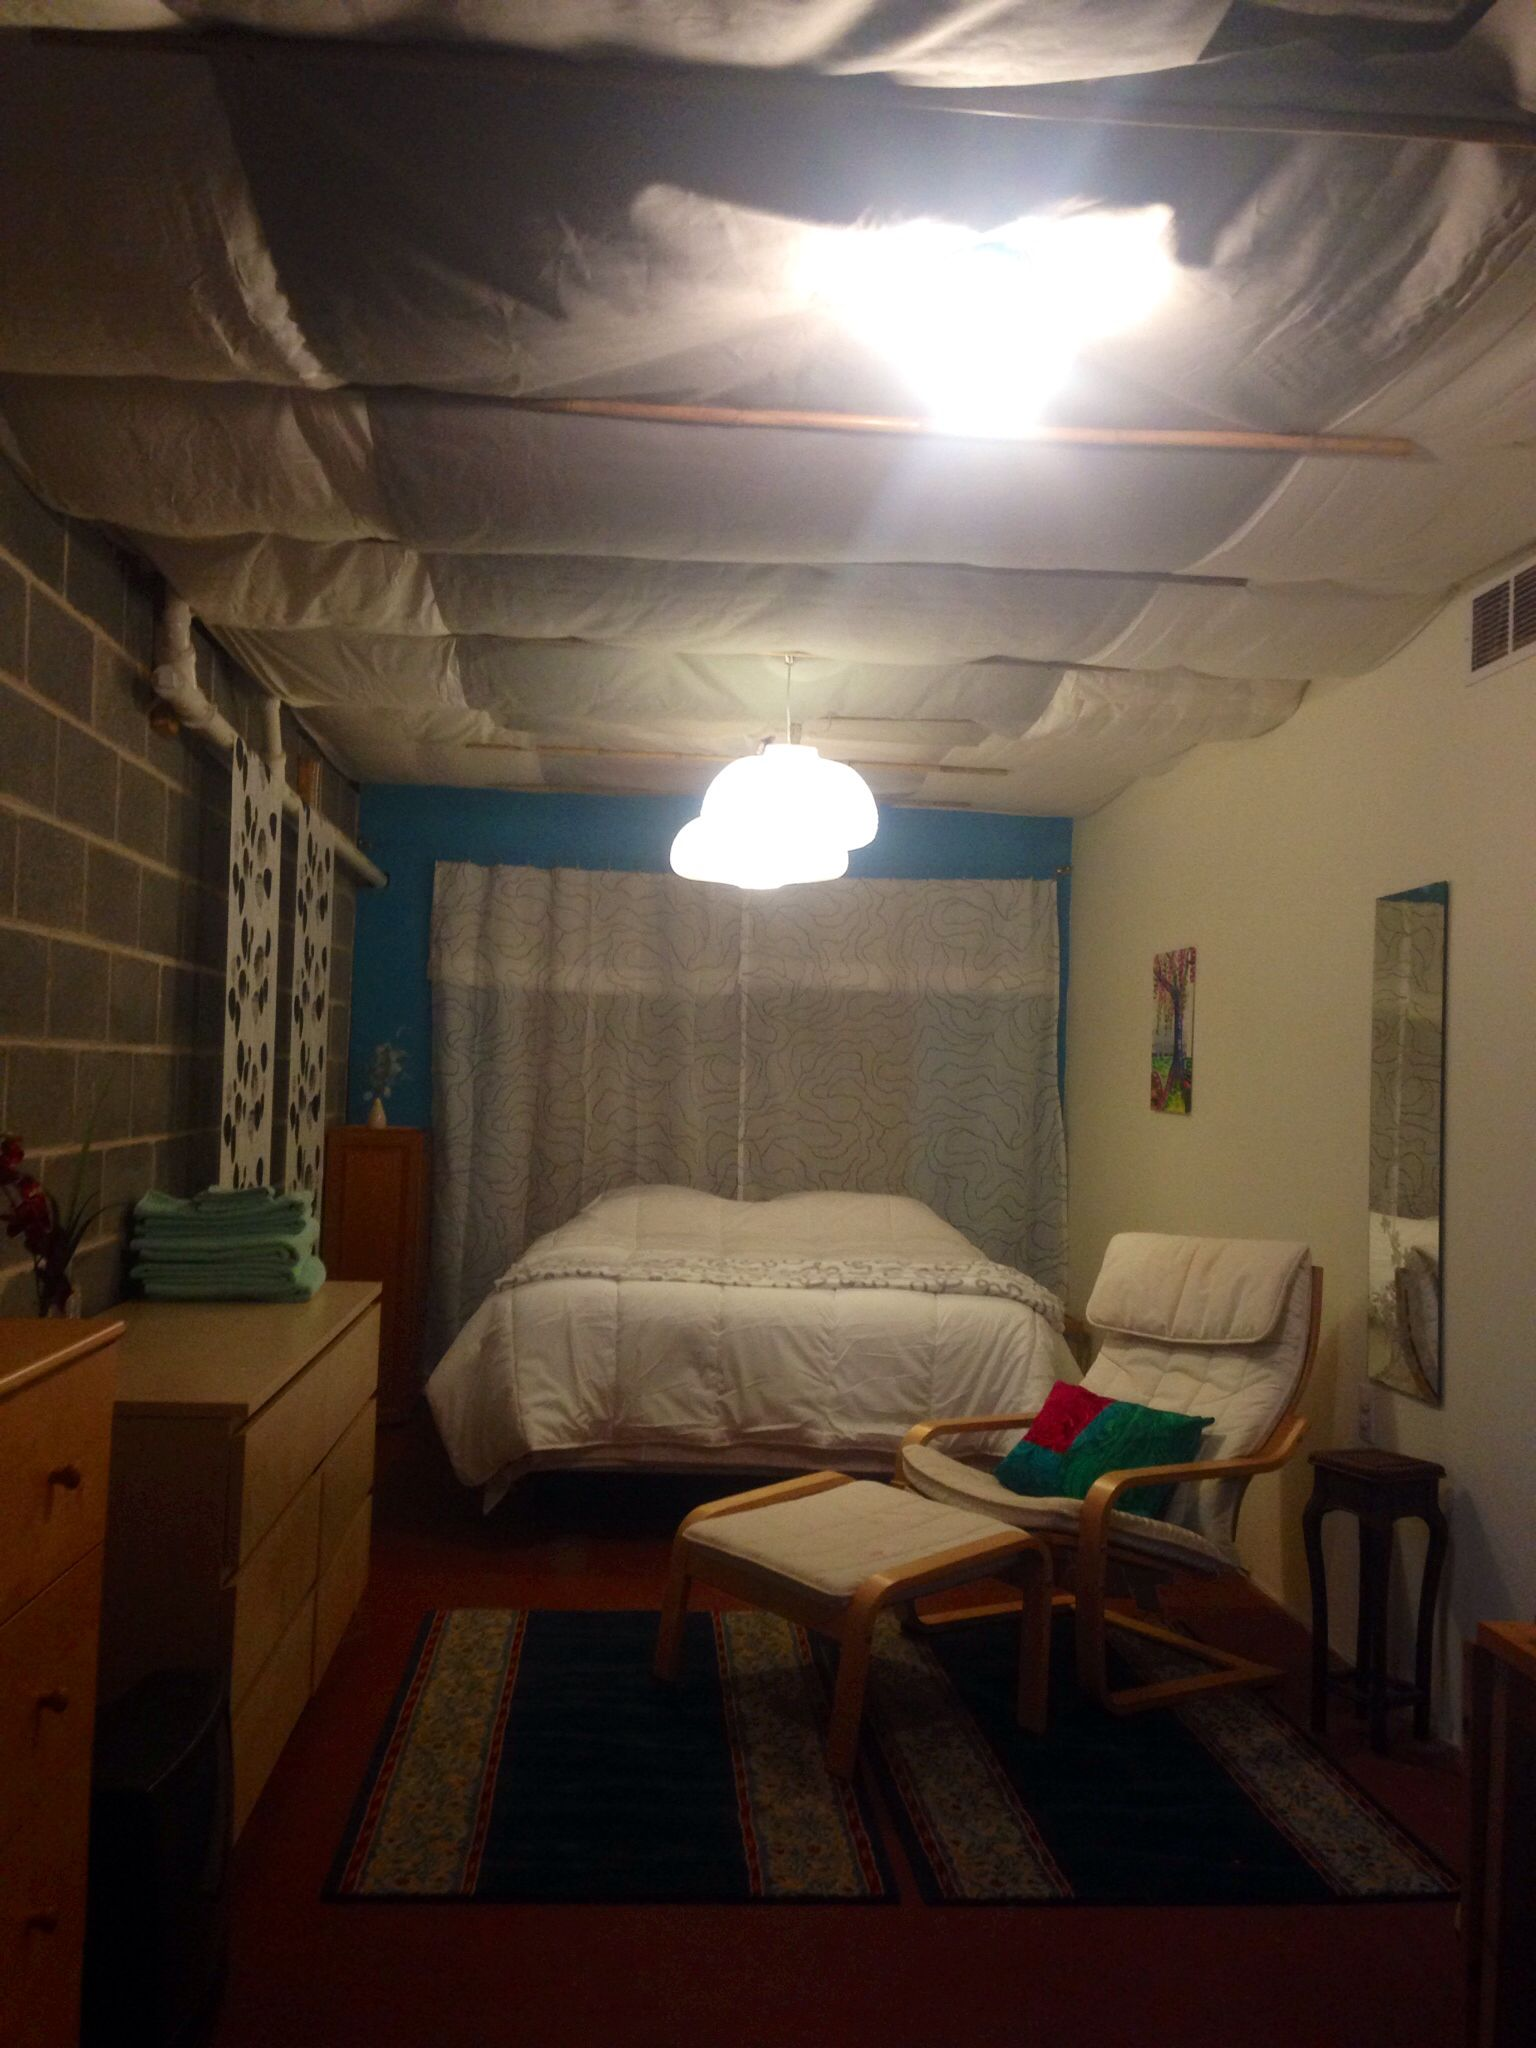 Diy Basement Ceiling Cover With Sheets And Staple To Every Other Floor Board I Covered Staples With Small Basement Bedroom Diy Basement Basement Guest Rooms